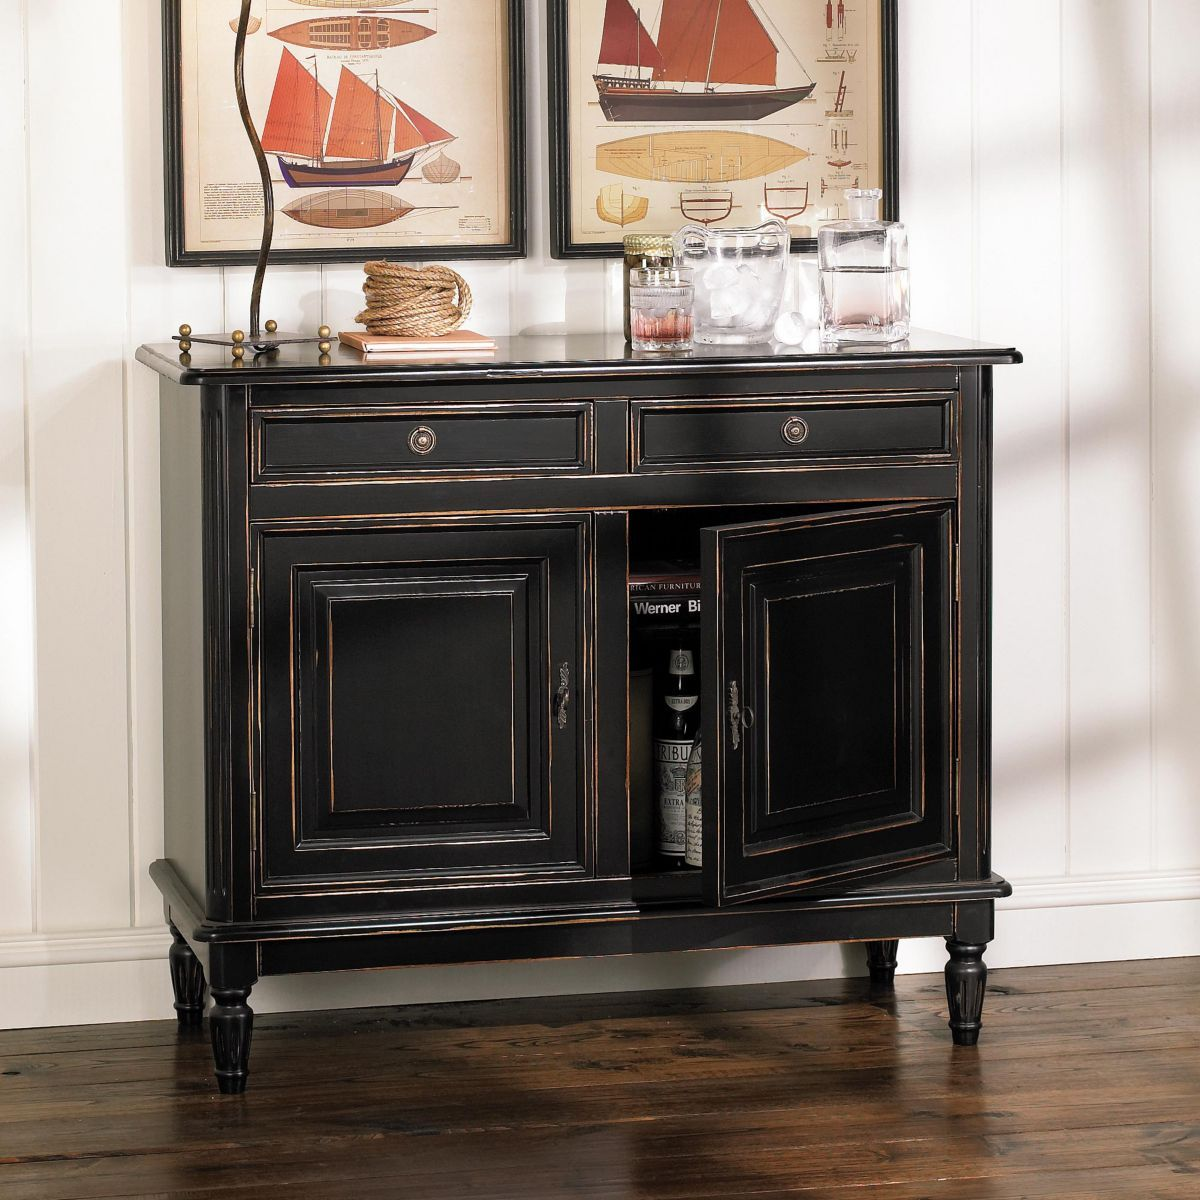 Dining Room Consoles: Living Rooms, Drawers And In